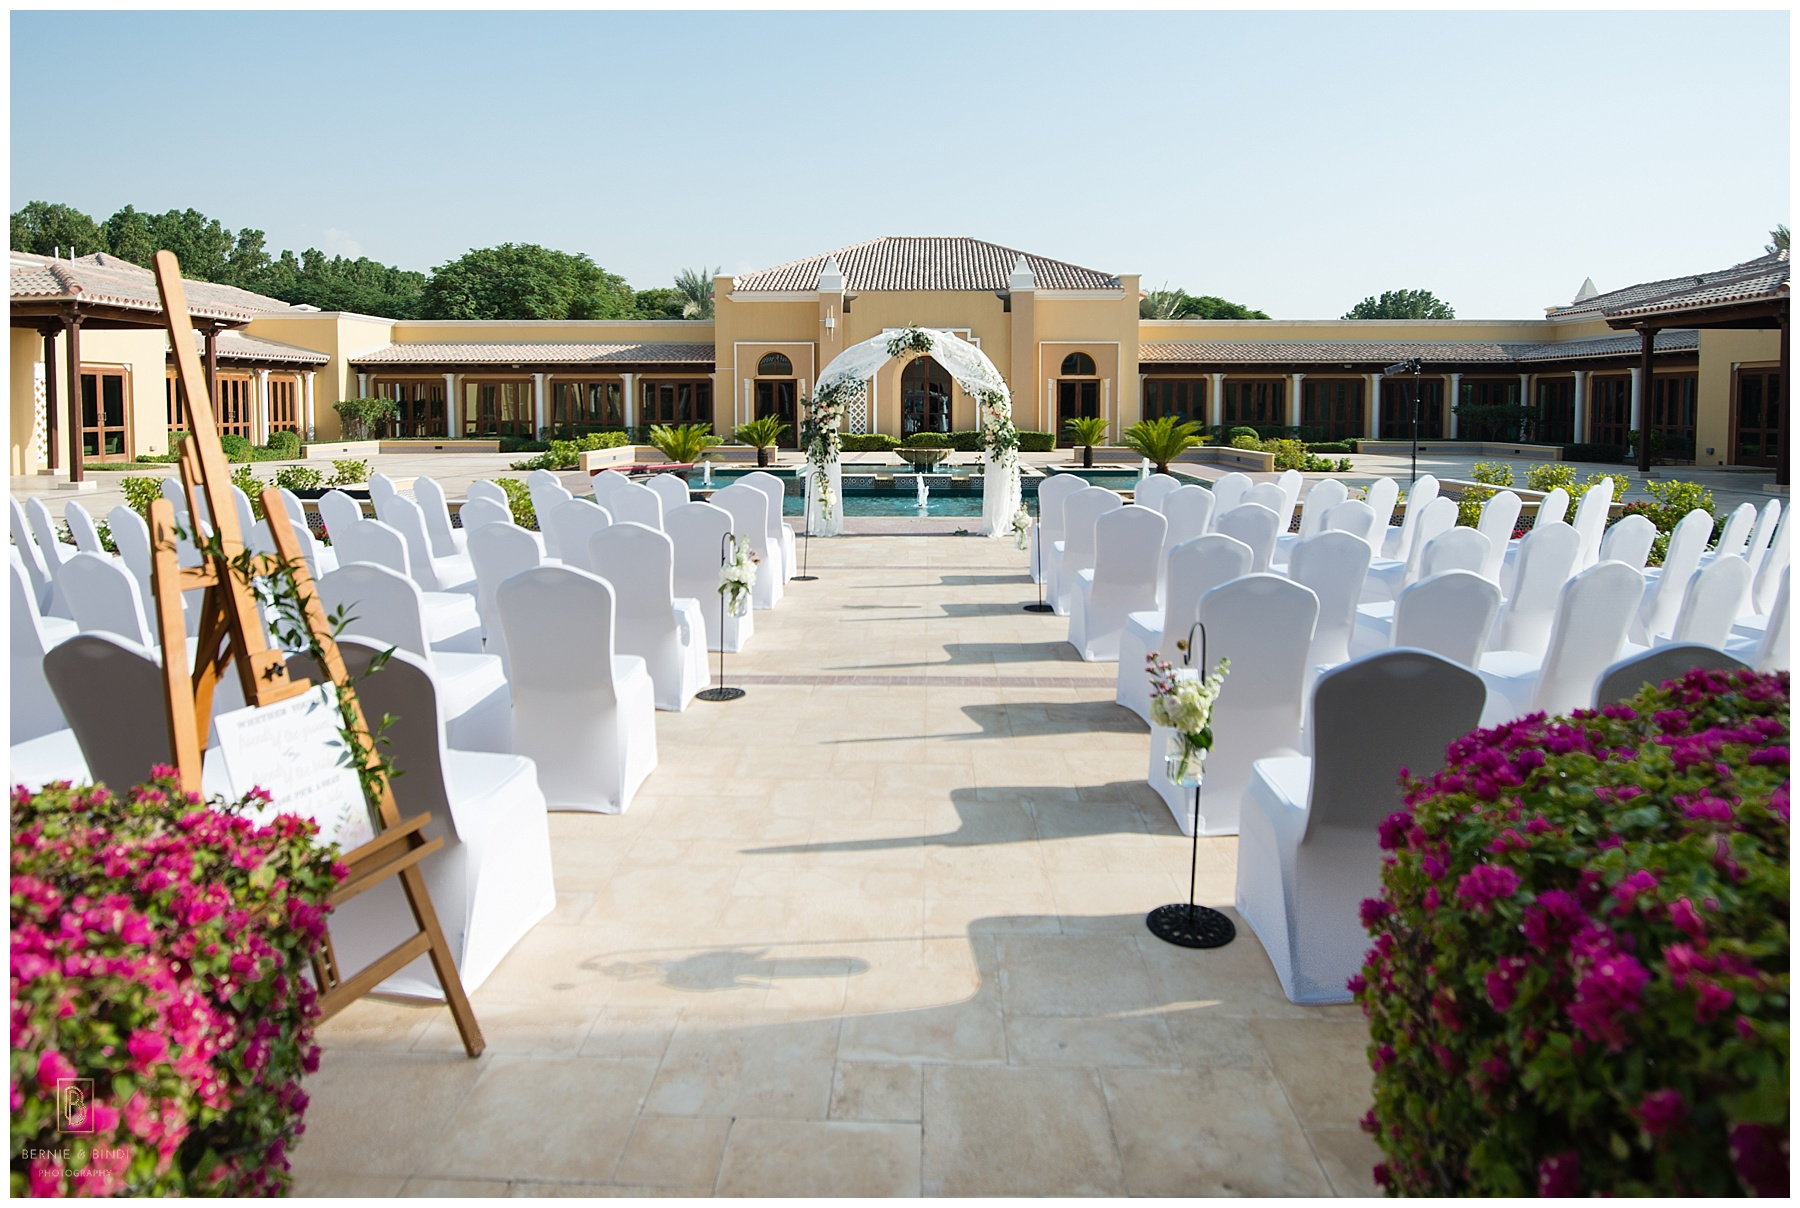 6 Of The Best Wedding Venues In Dubai